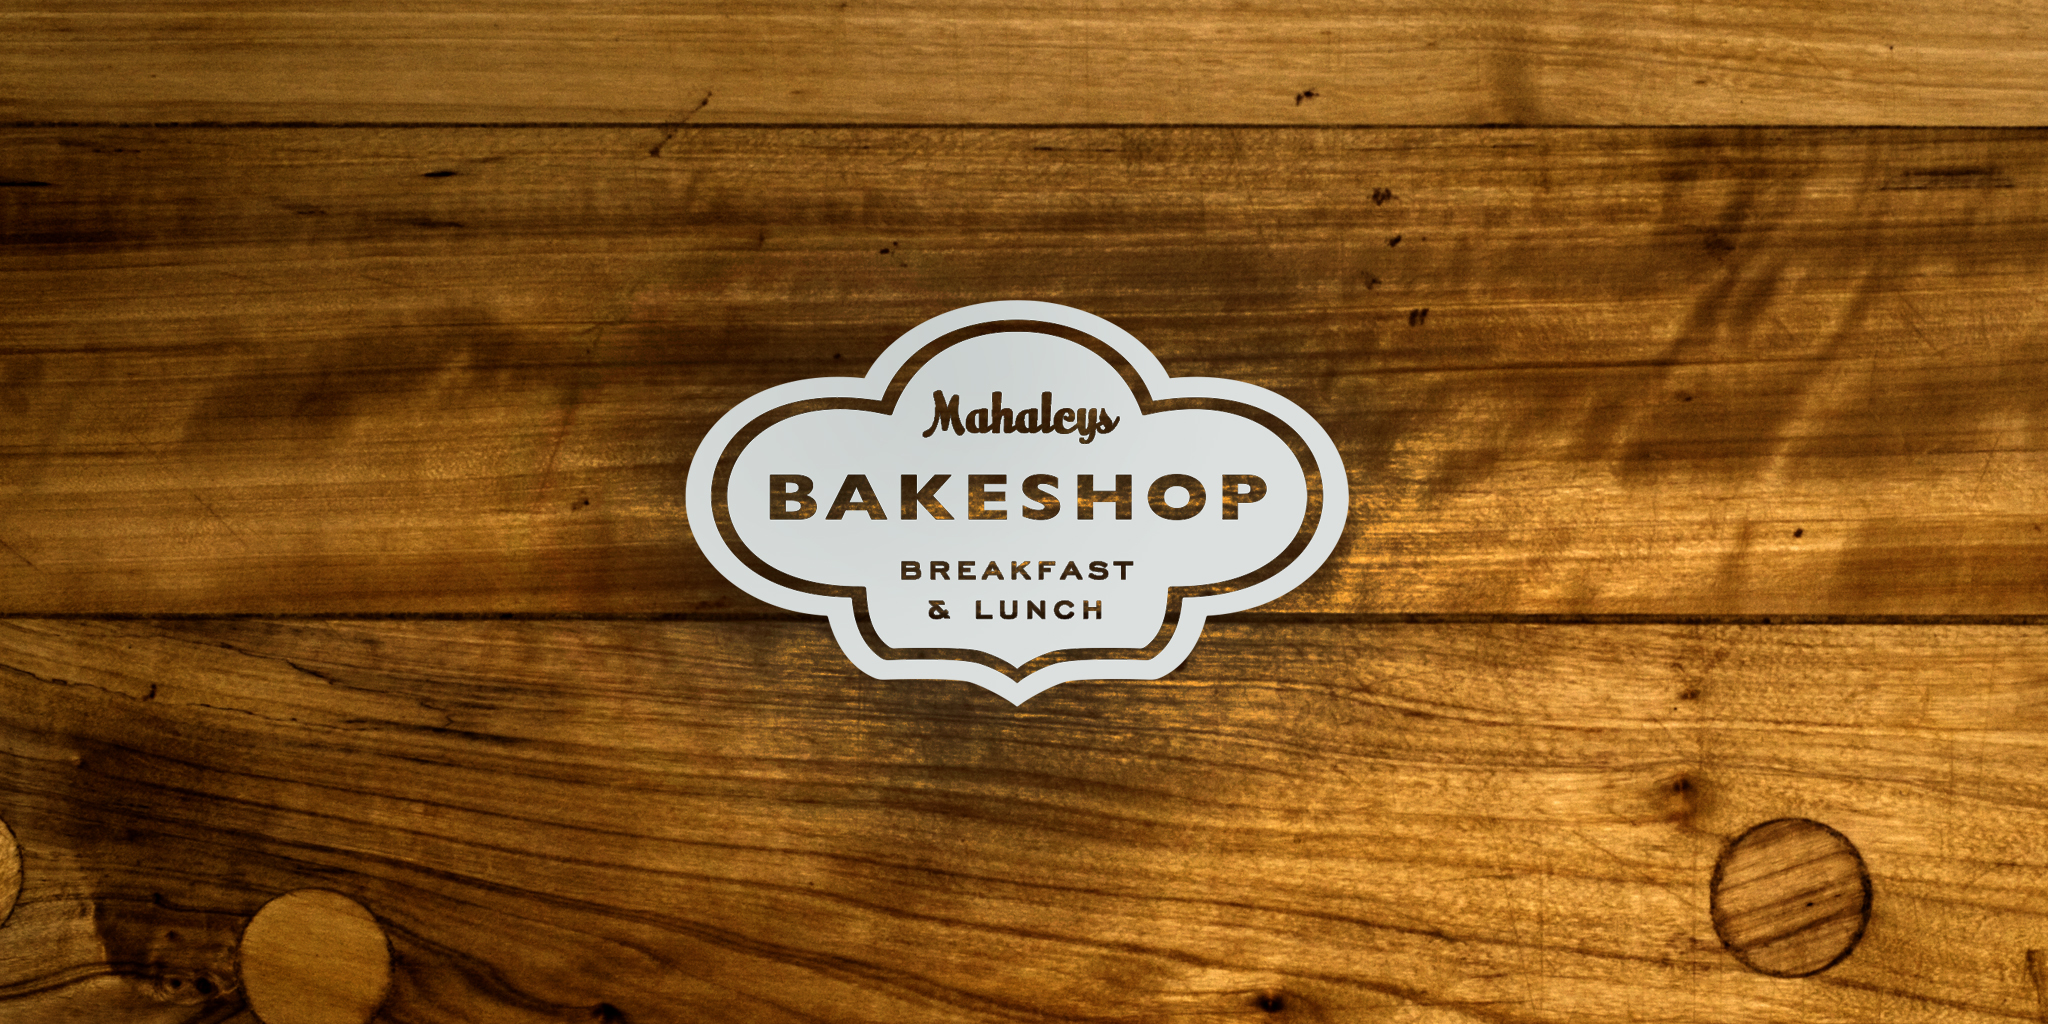 IDENTITY  Mahaley's Bakeshop  A small town appeal bakeshop needed a logo that sensibly revealed a warm and fuzzy emotion while conveying bakery. The puffy icon shape denoted both baked goods rising as well as a baker's hat.